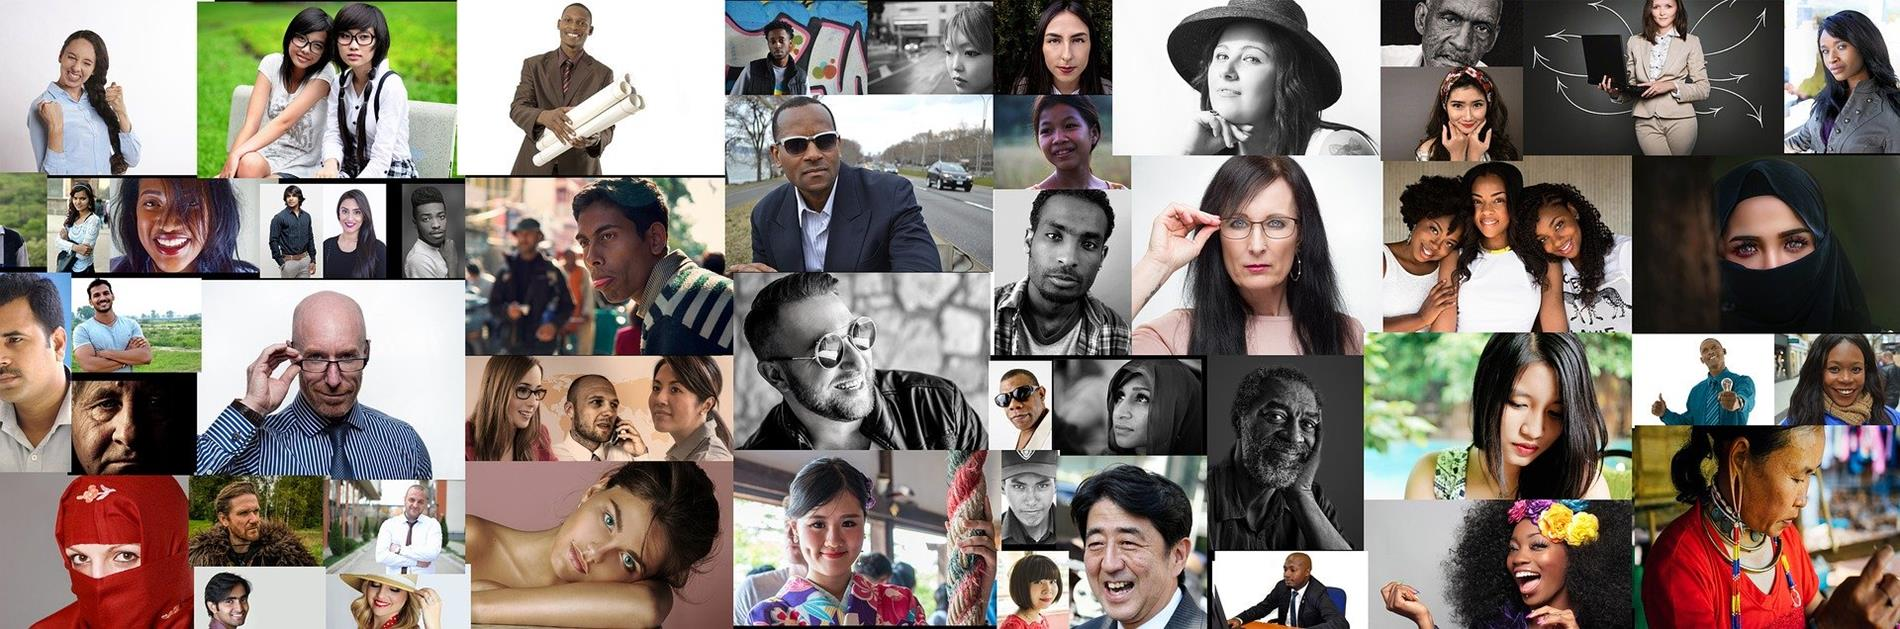 Photo montage banner of all kinds of humans